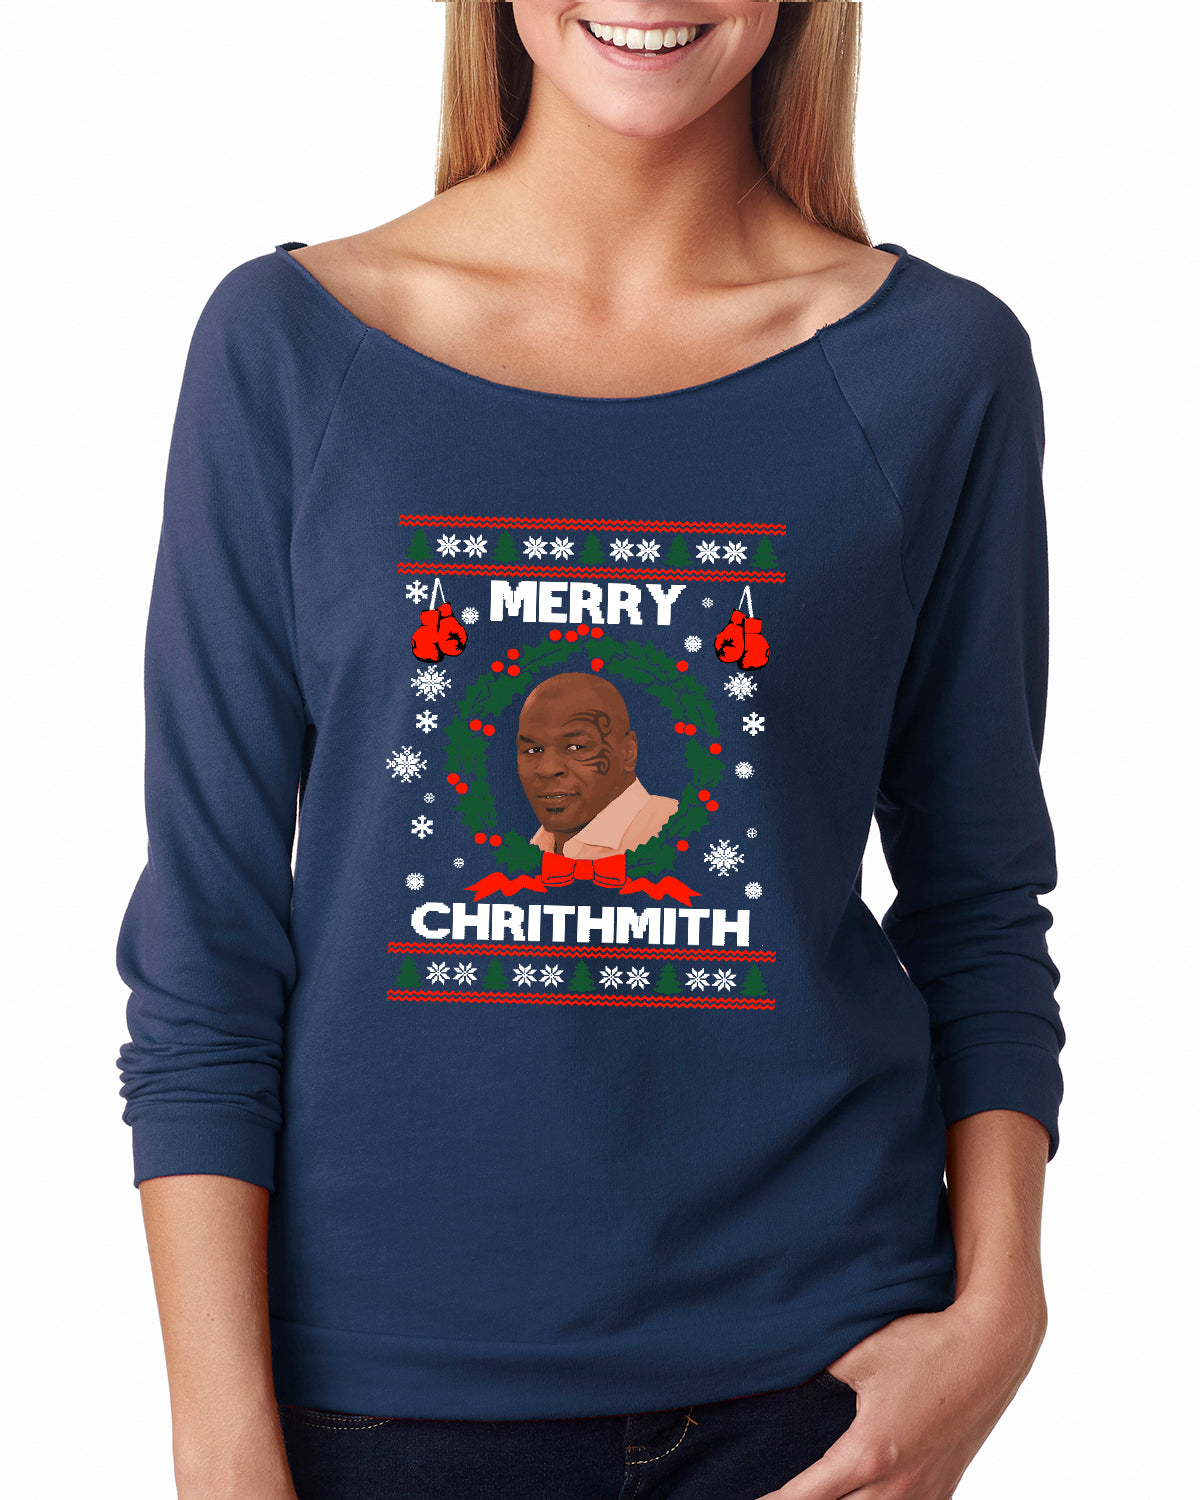 merry chrithmith ugly christmas sweater raglan succulent treasure - Merry Christmas Mike Tyson